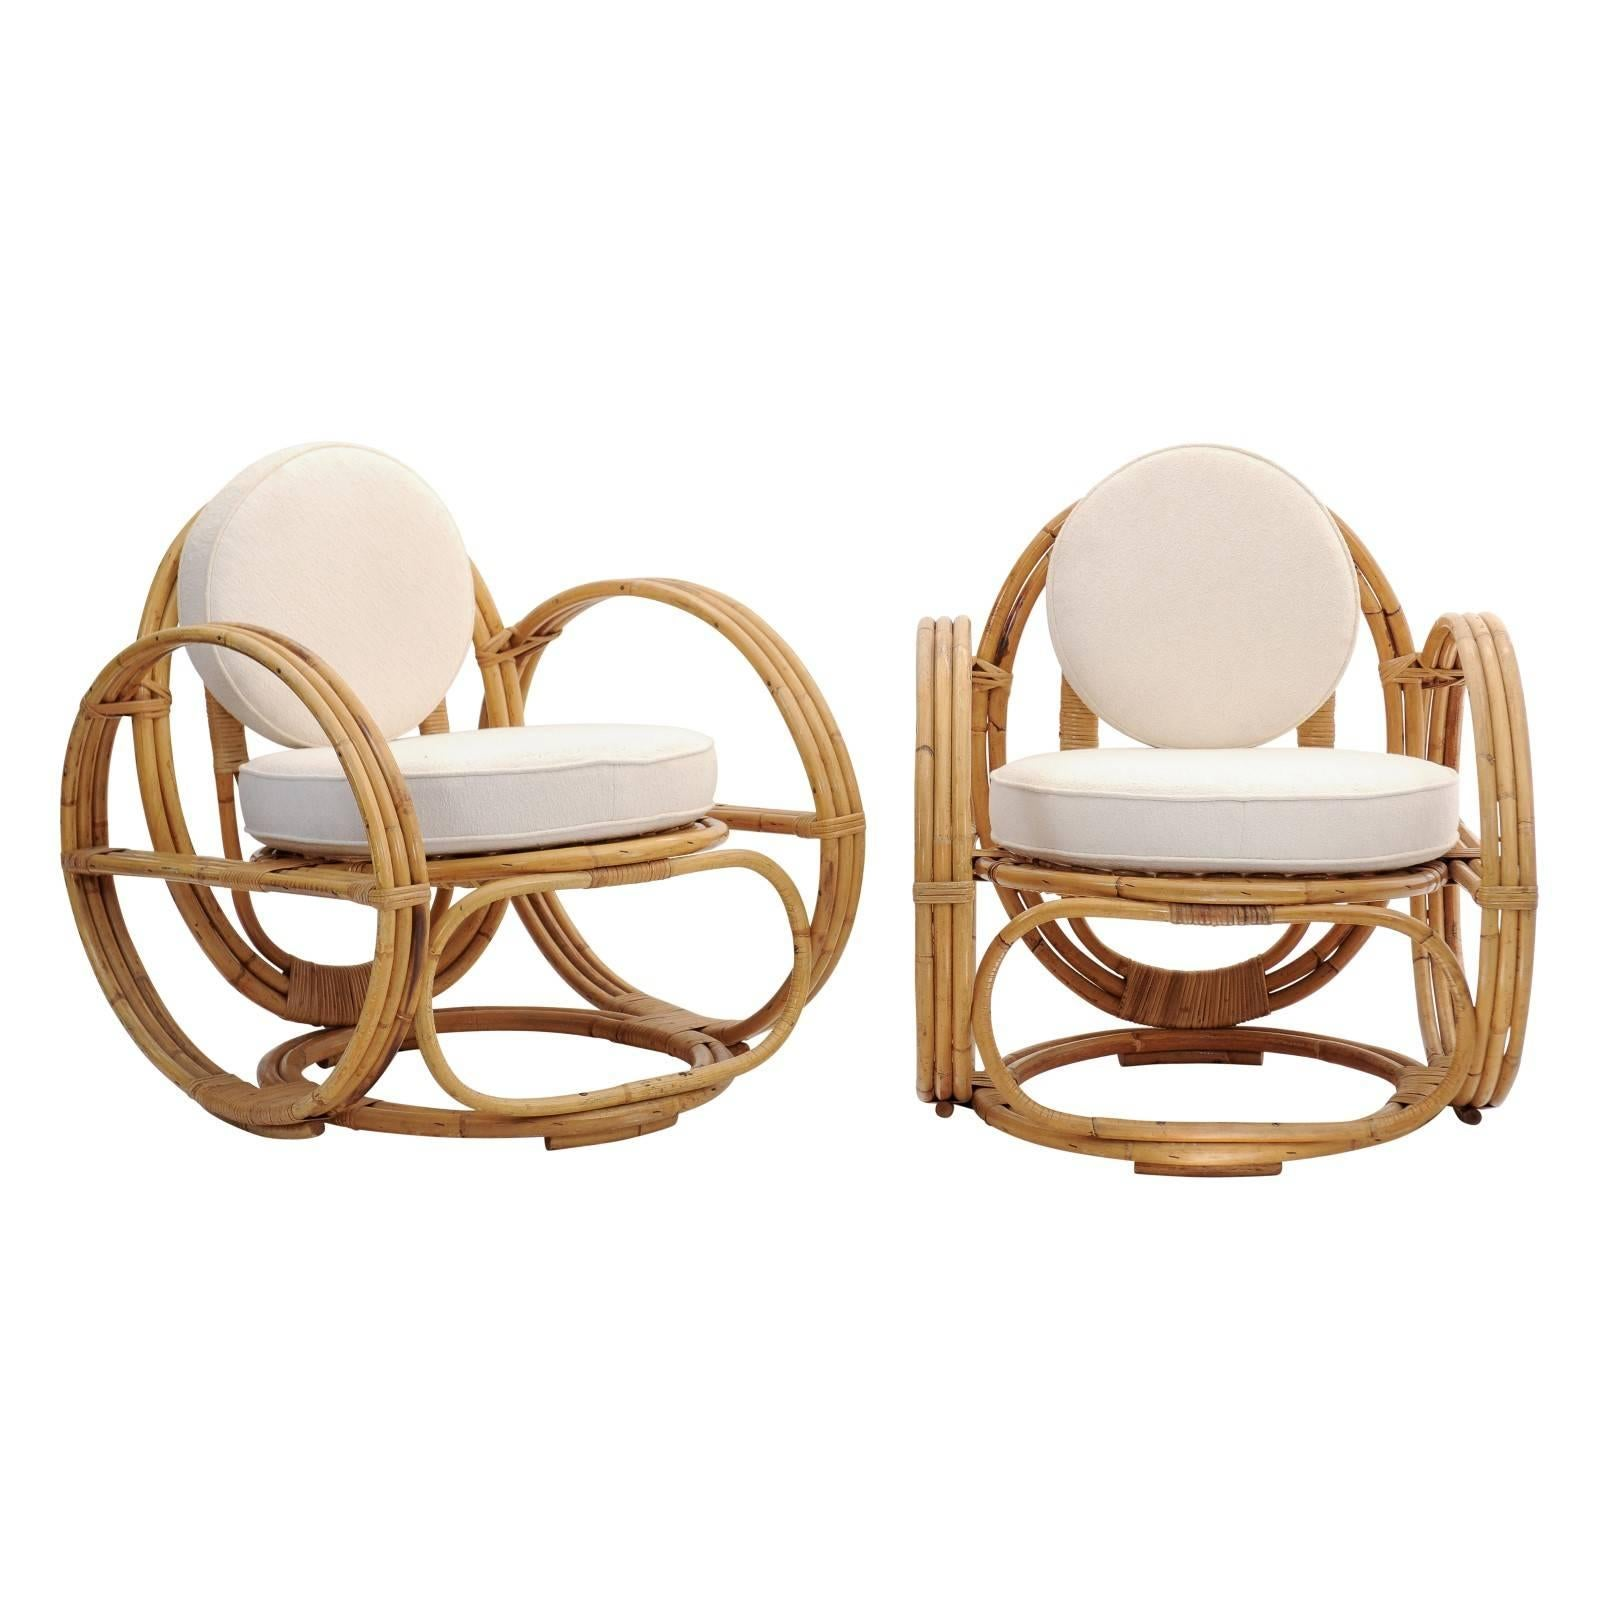 Pair Of French 1950s Retro Rattan Lounge Chairs With Upholstered Back And  Seat